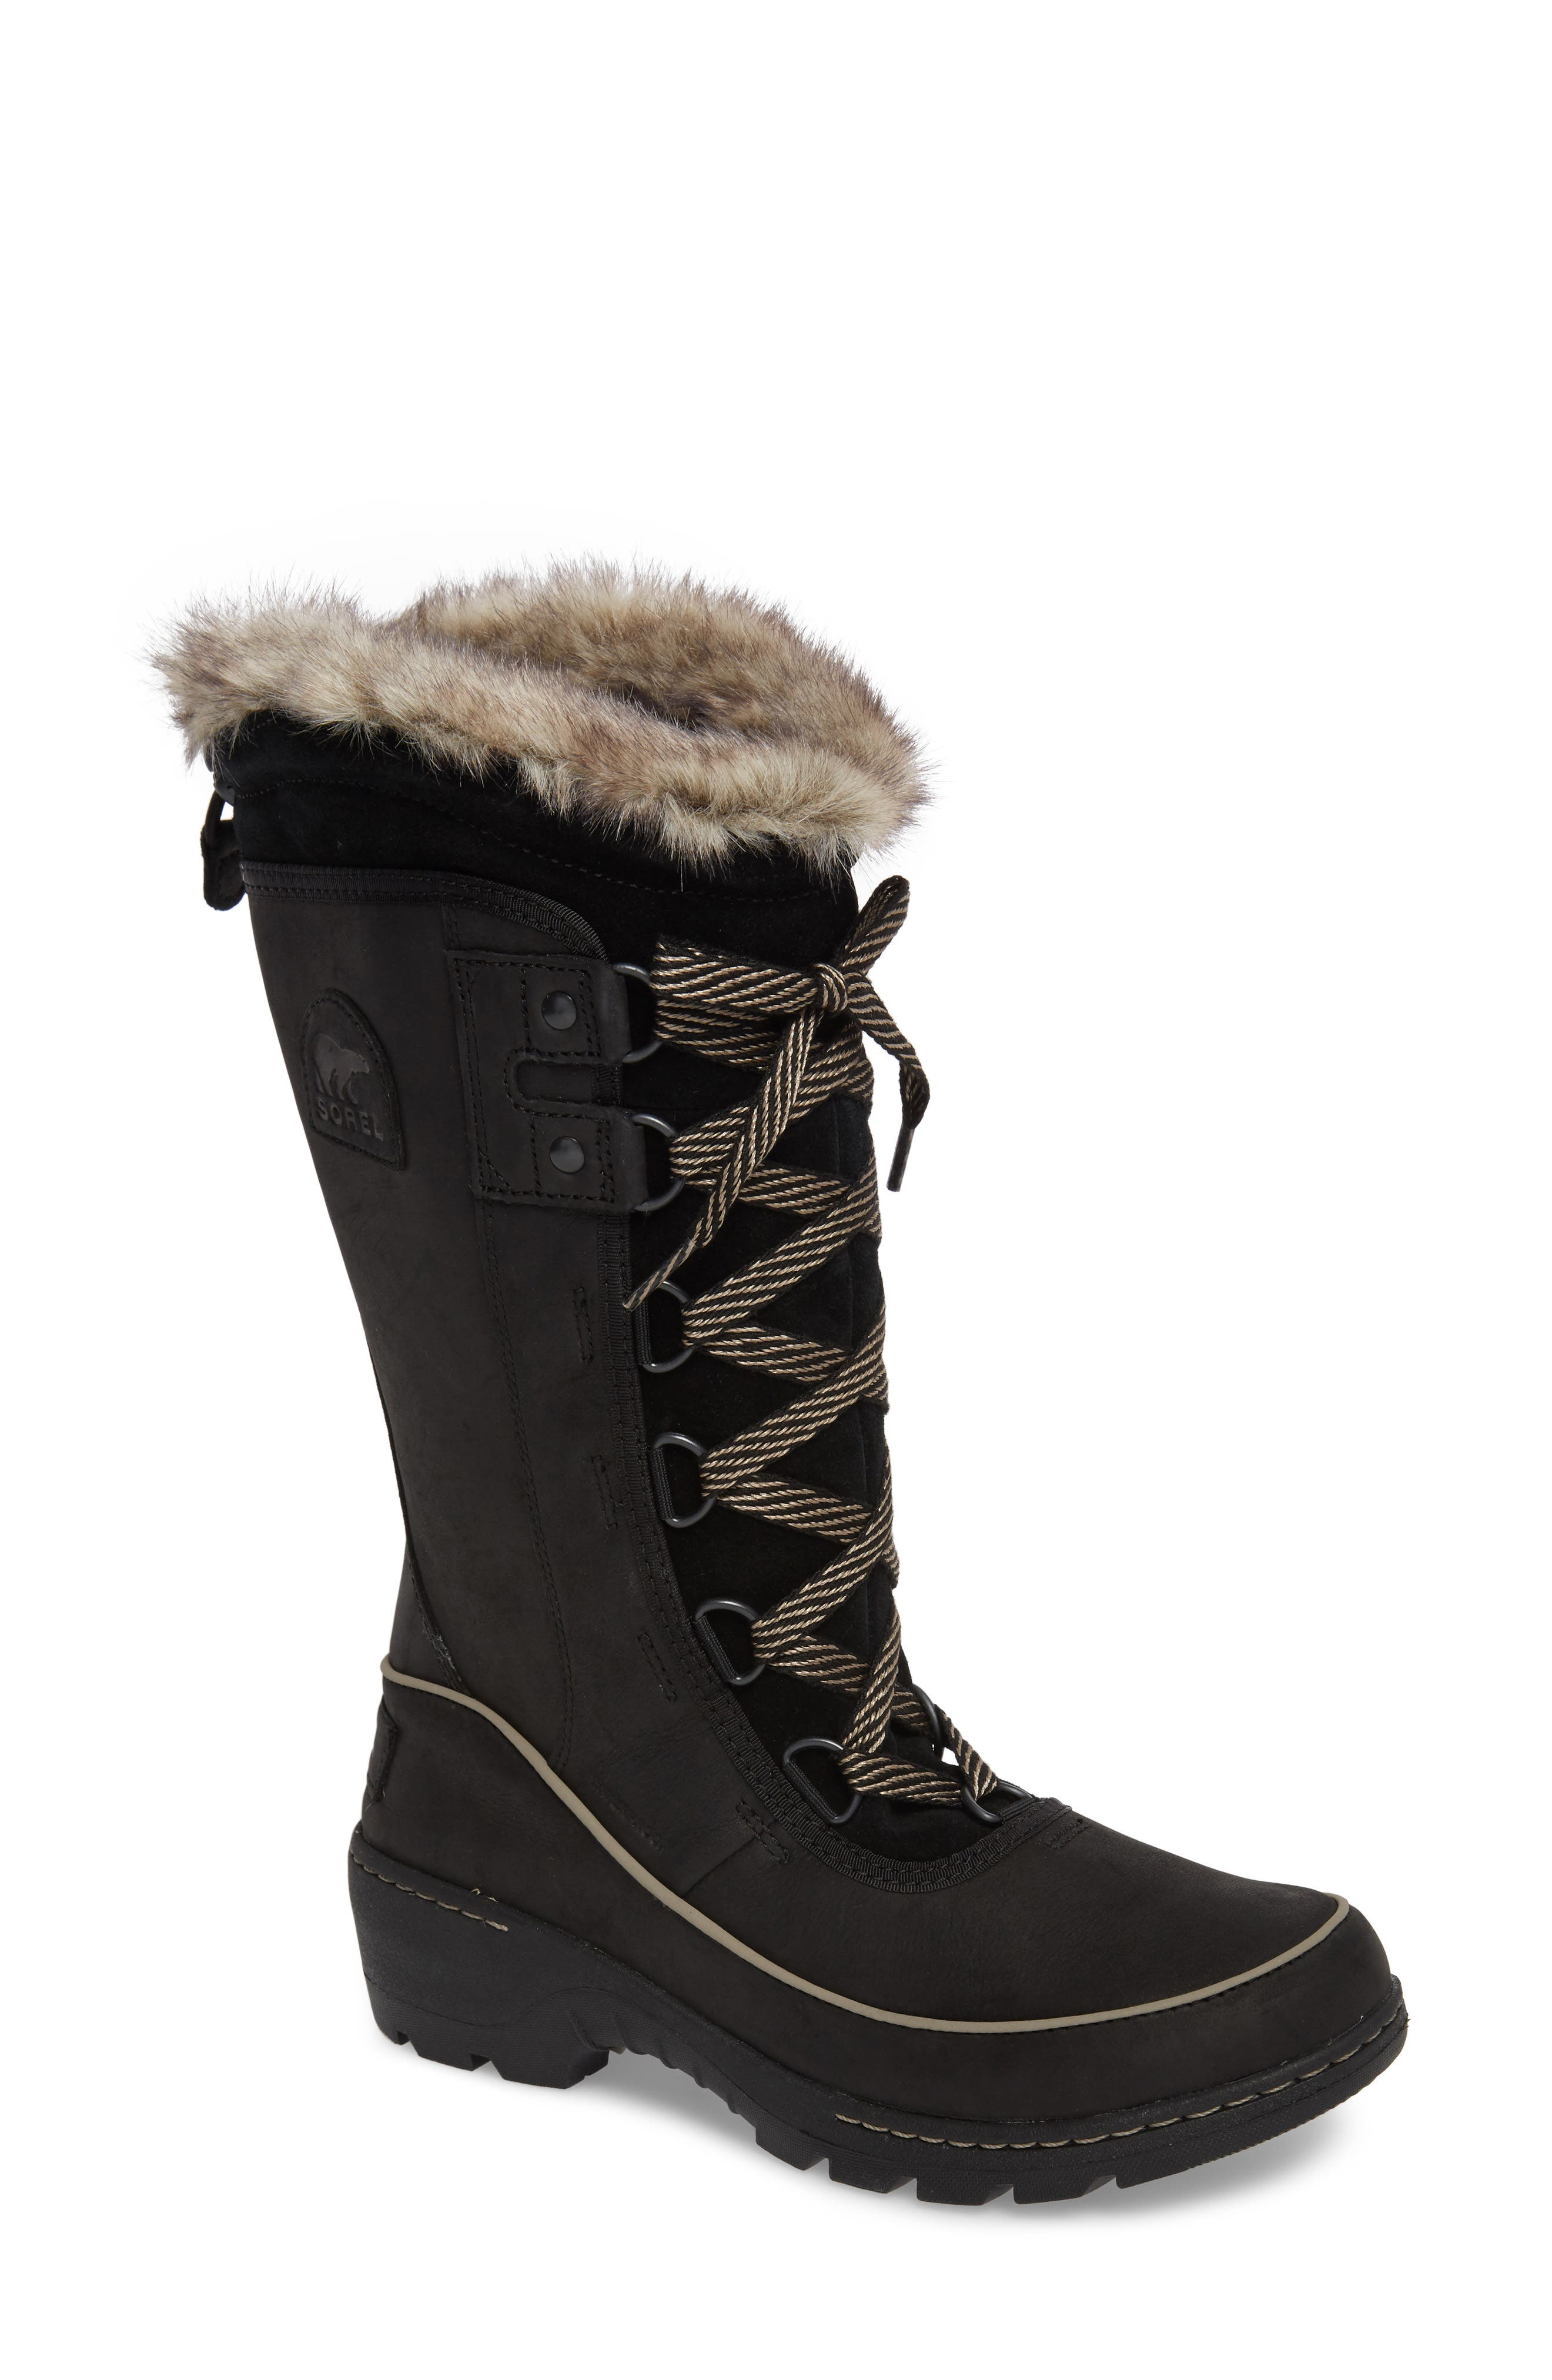 Main Image - SOREL Tivoli II Insulated Winter Boot with Faux Fur Trim (Women)